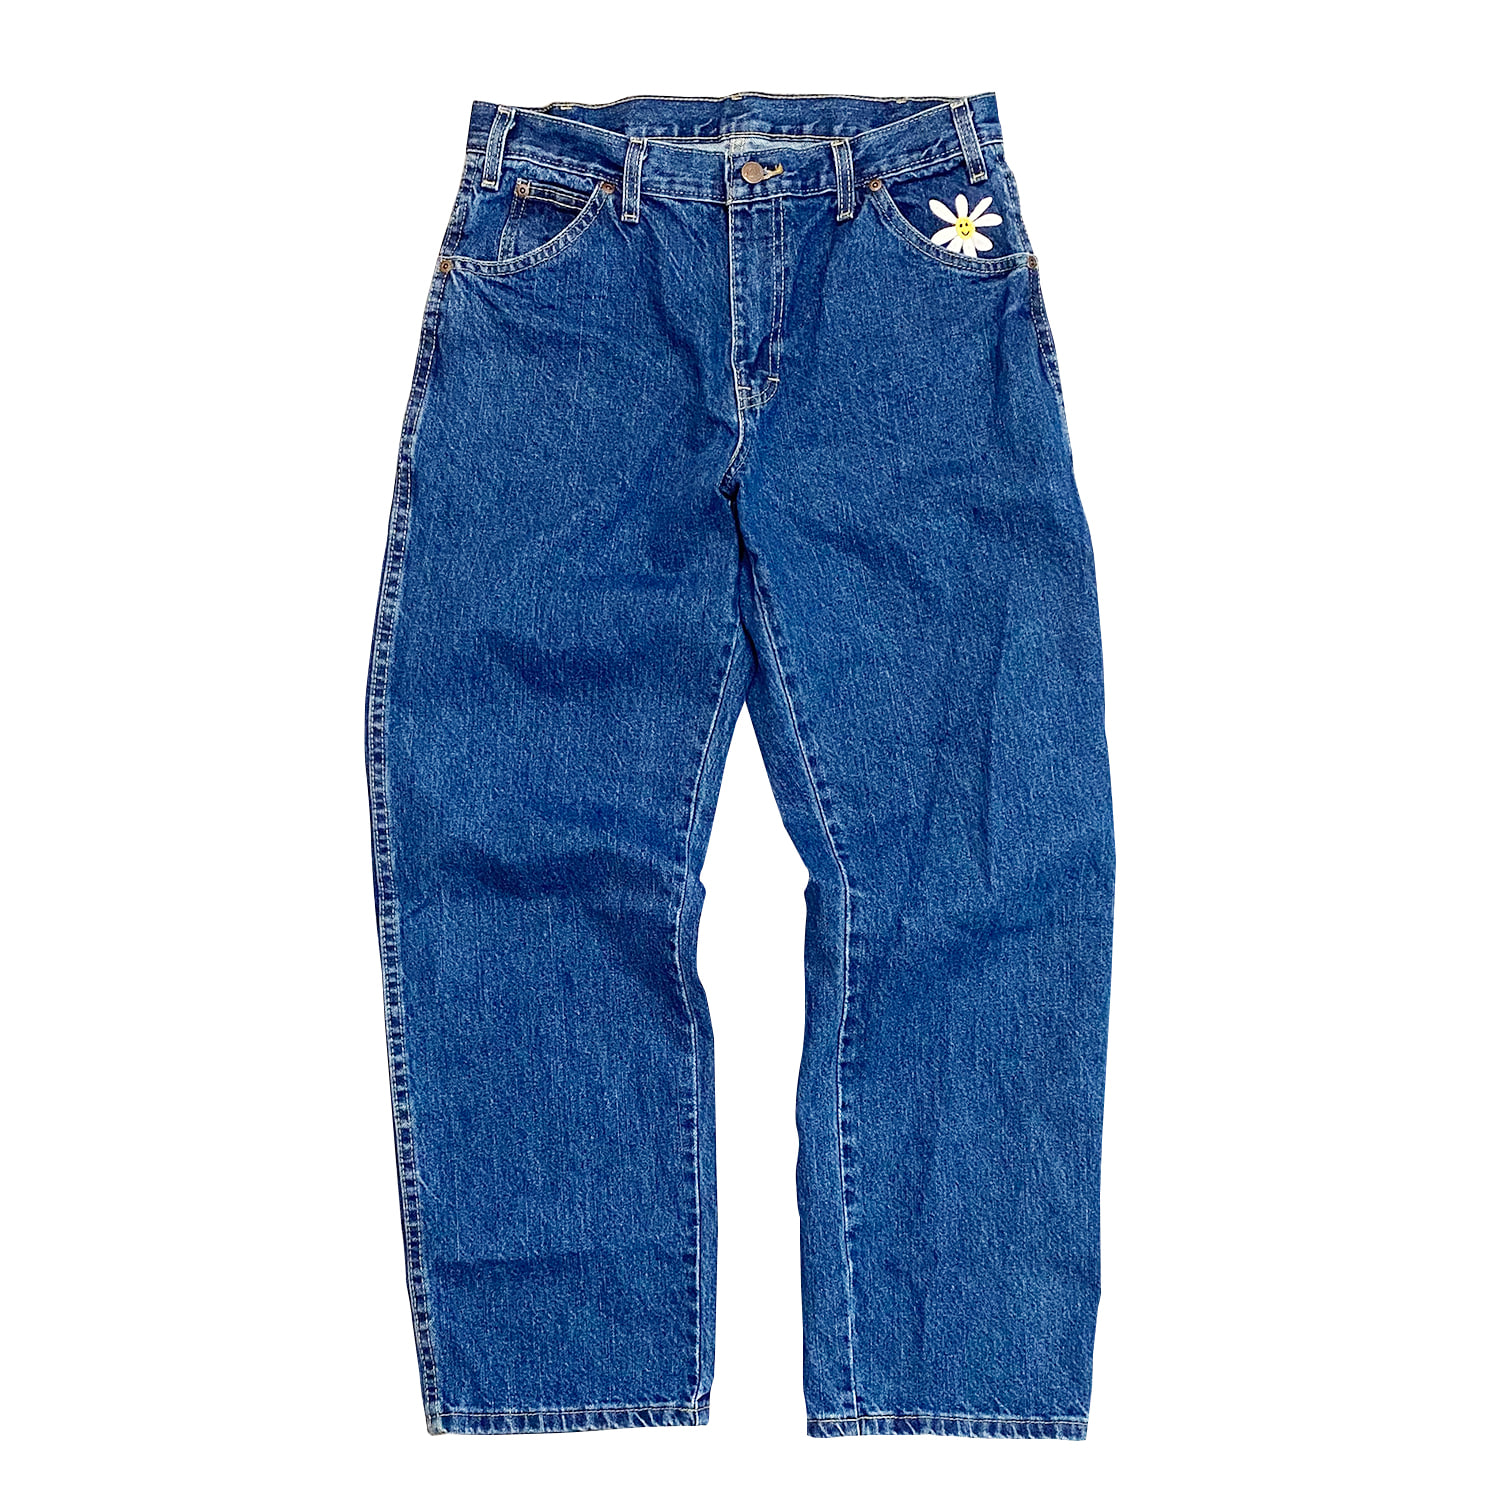 Daisy Dickies Relaxed Straight Jeans (Stonewashed Indigo Blue)